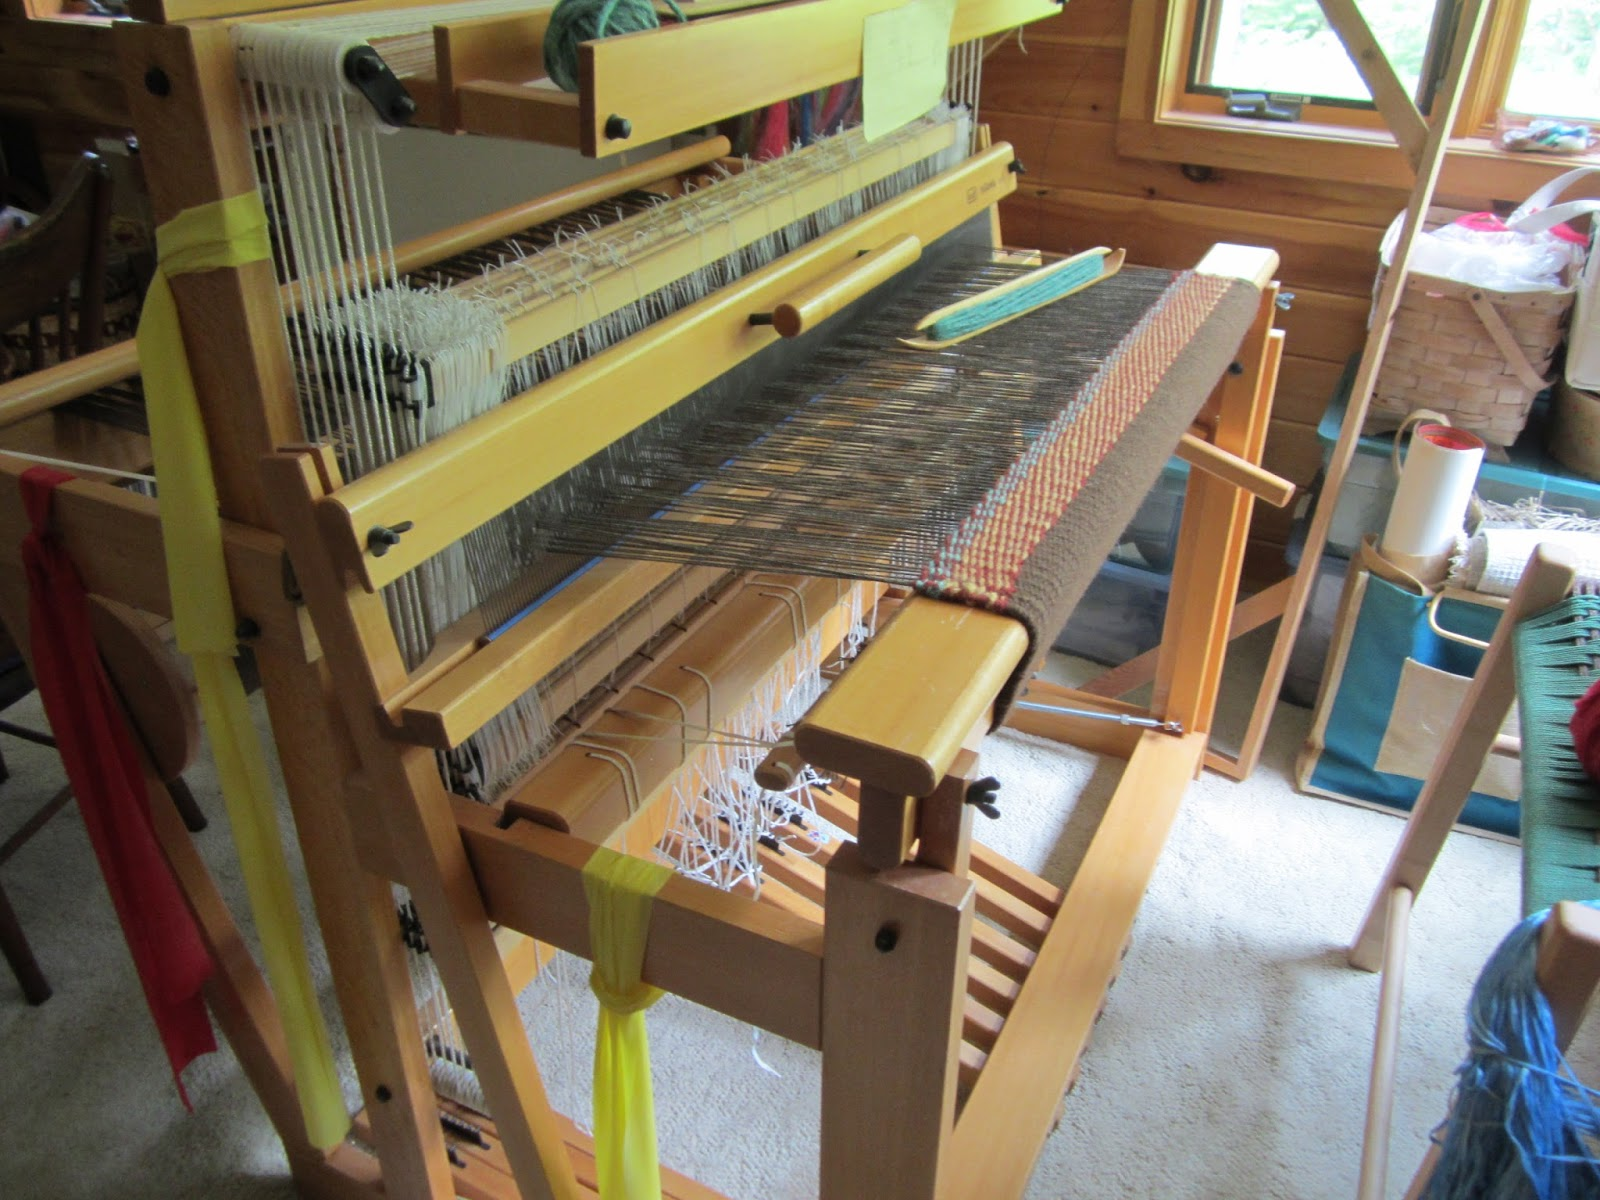 Buellwood Weaver and Fiber Guild, Hancock, Michigan: August 2015